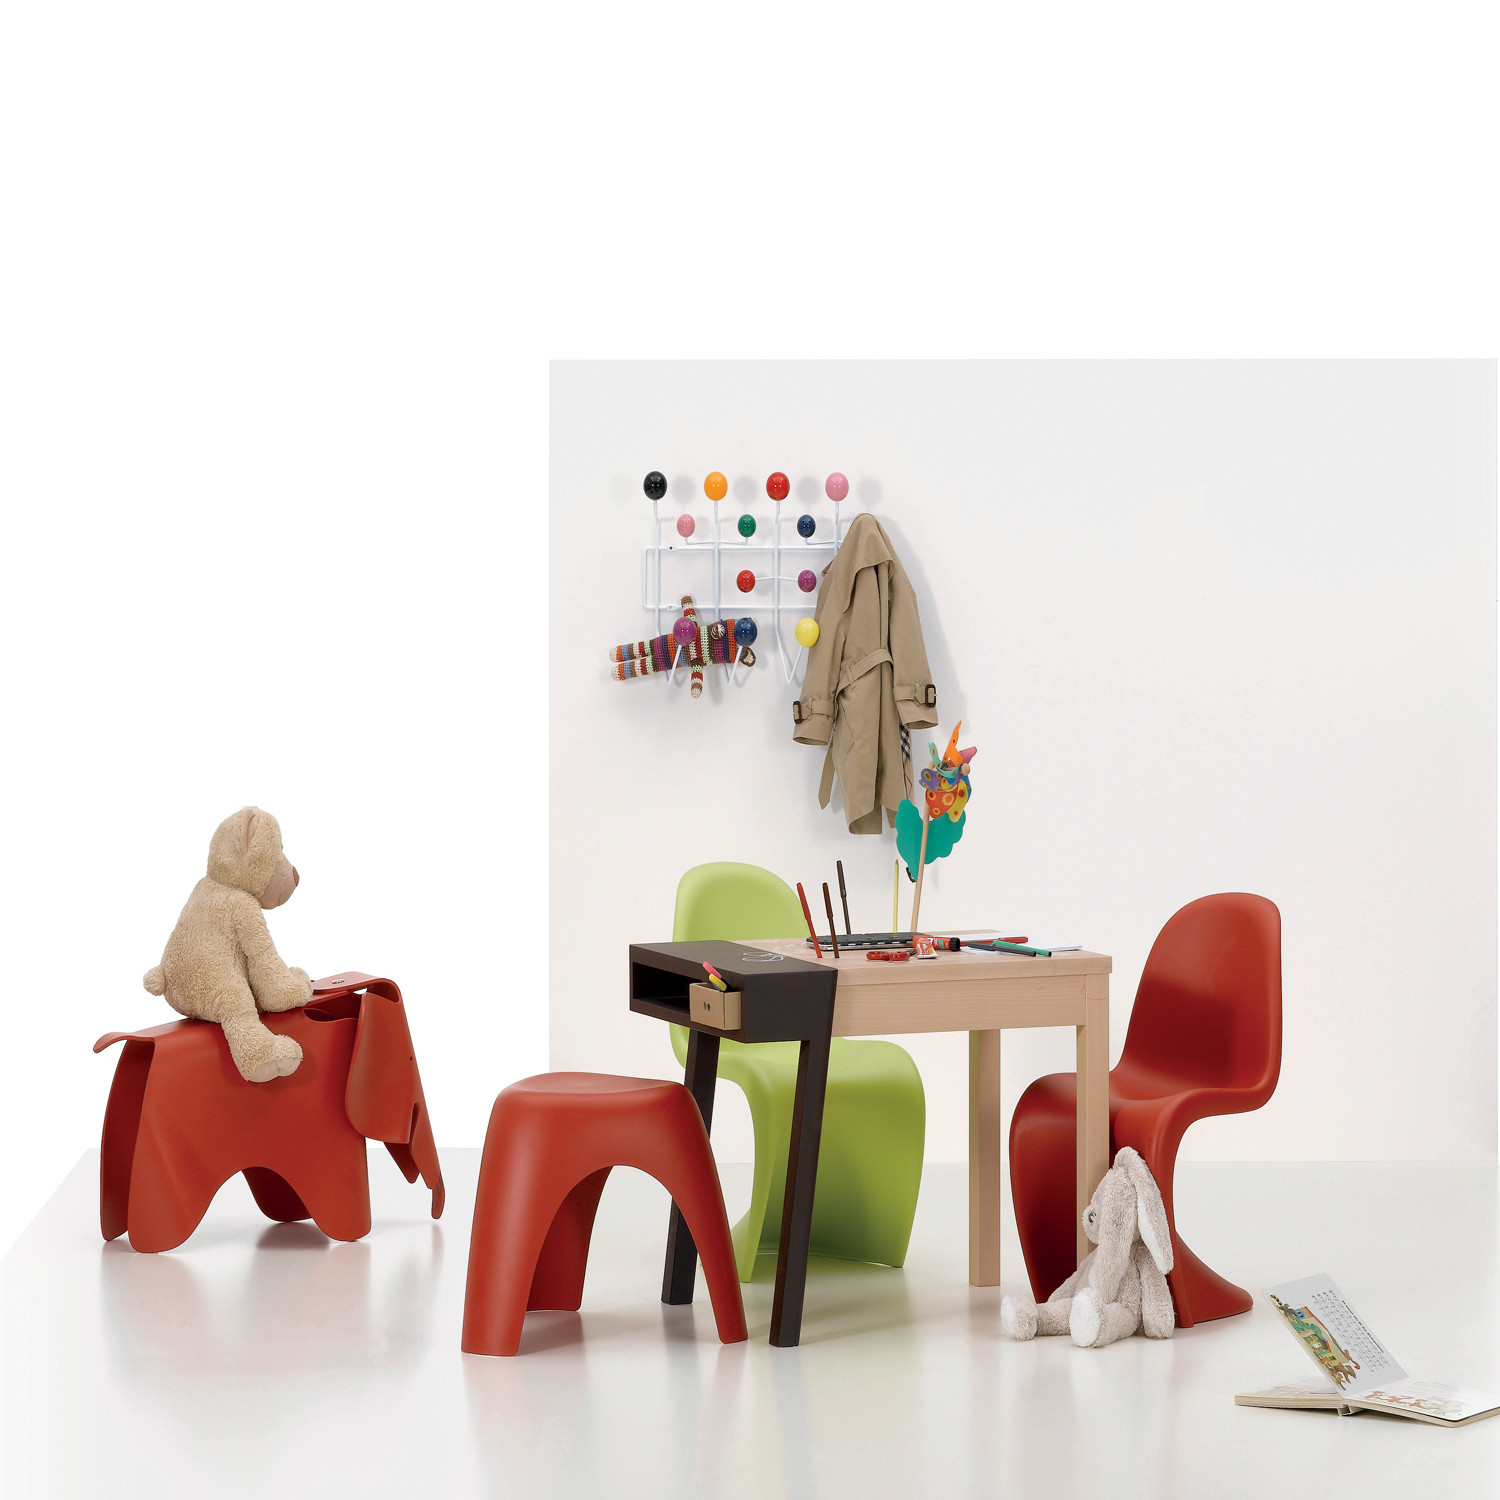 Chaises Pantone Panton Junior Chairs | Childrens Chairs In Plastic | Apres